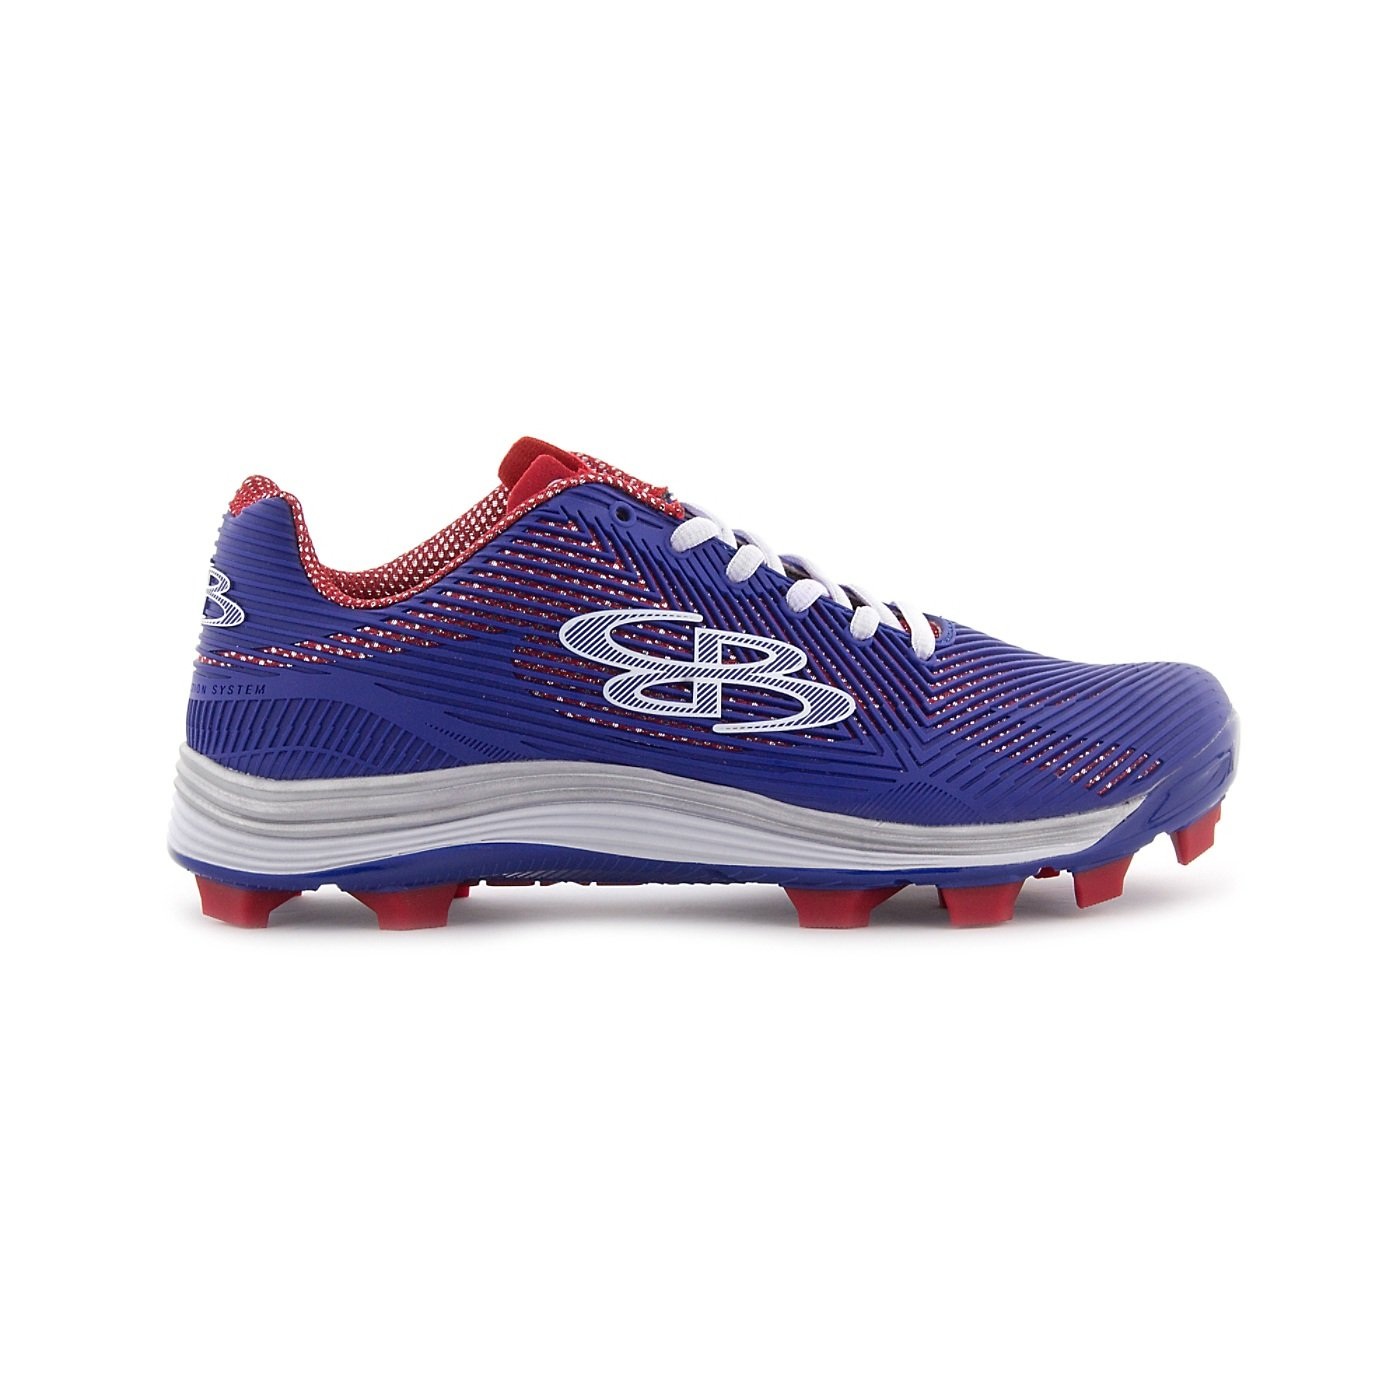 Boombah Women's Spotlight Molded Cleat Royal Blue/Red - Size 11.5 by Boombah